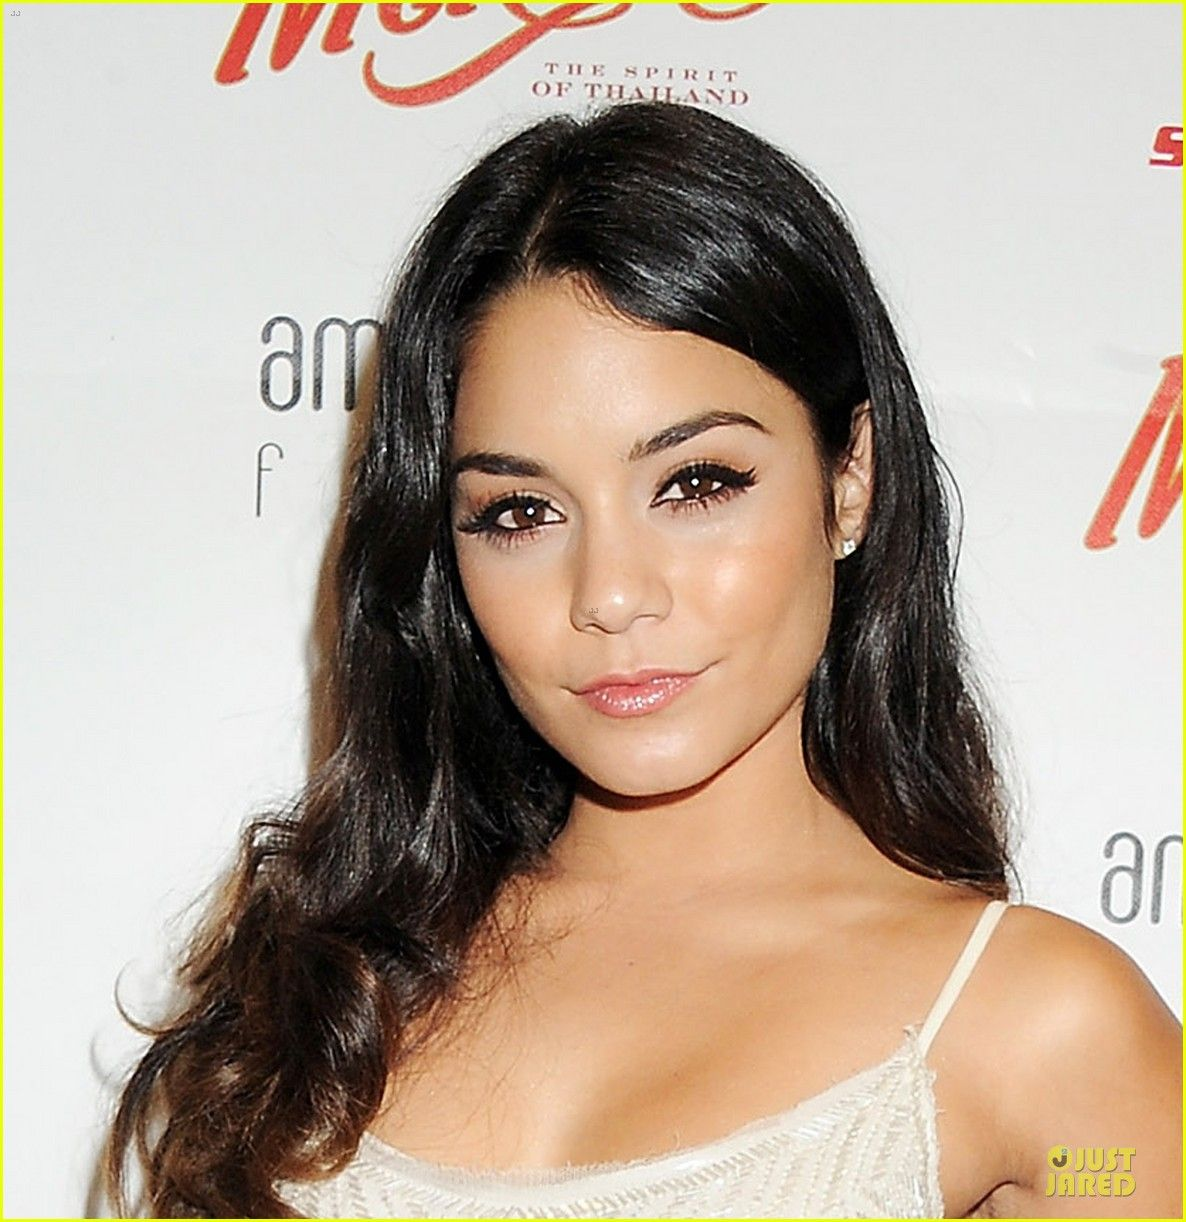 Vanessa hudgens native american directly. think